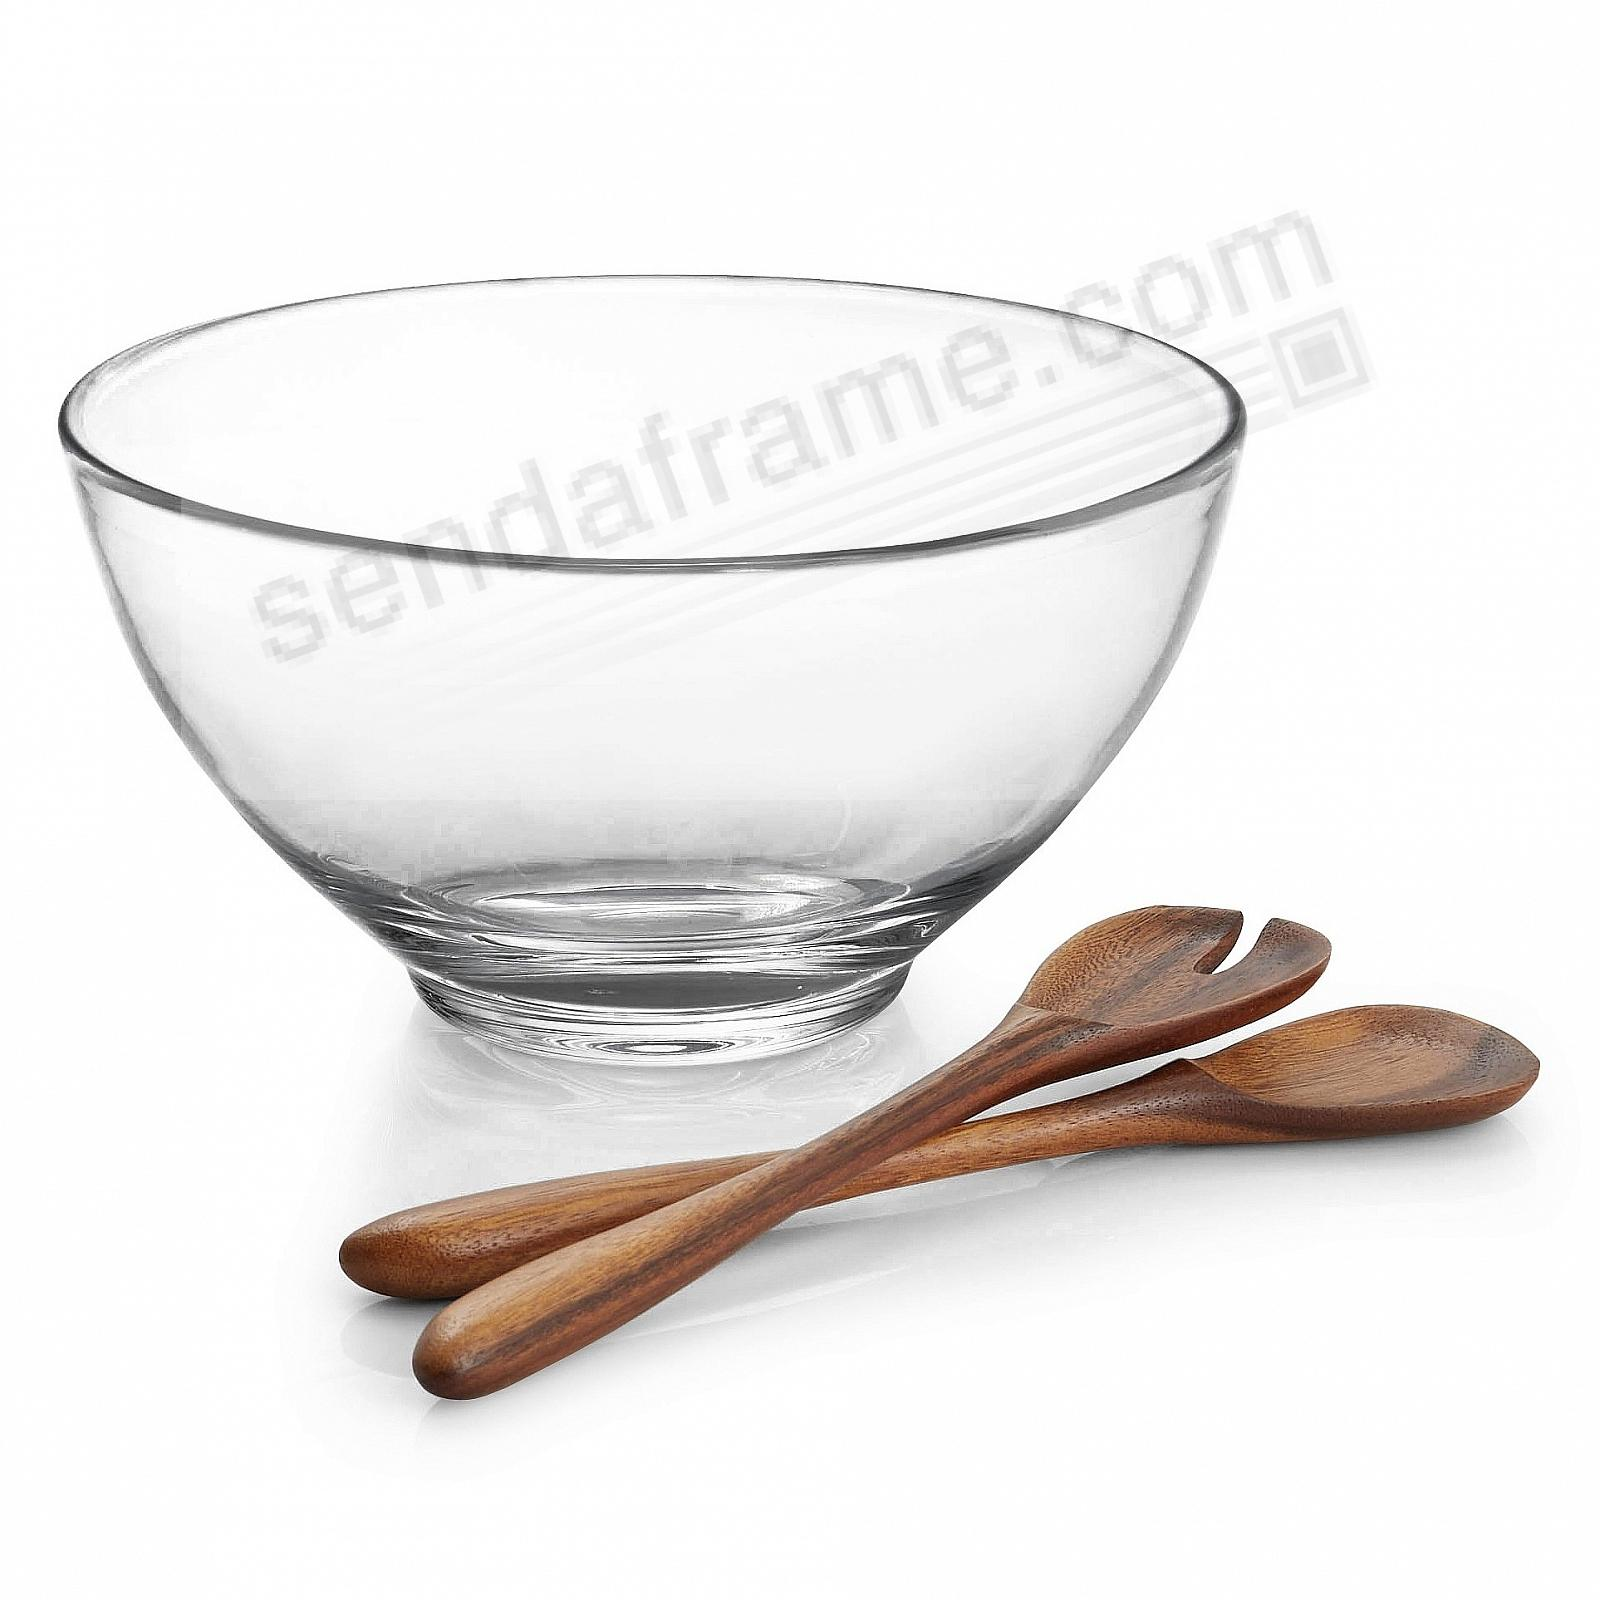 The Original MODERNE SALAD BOWL w/WOOD SERVERS crafted by Nambe®